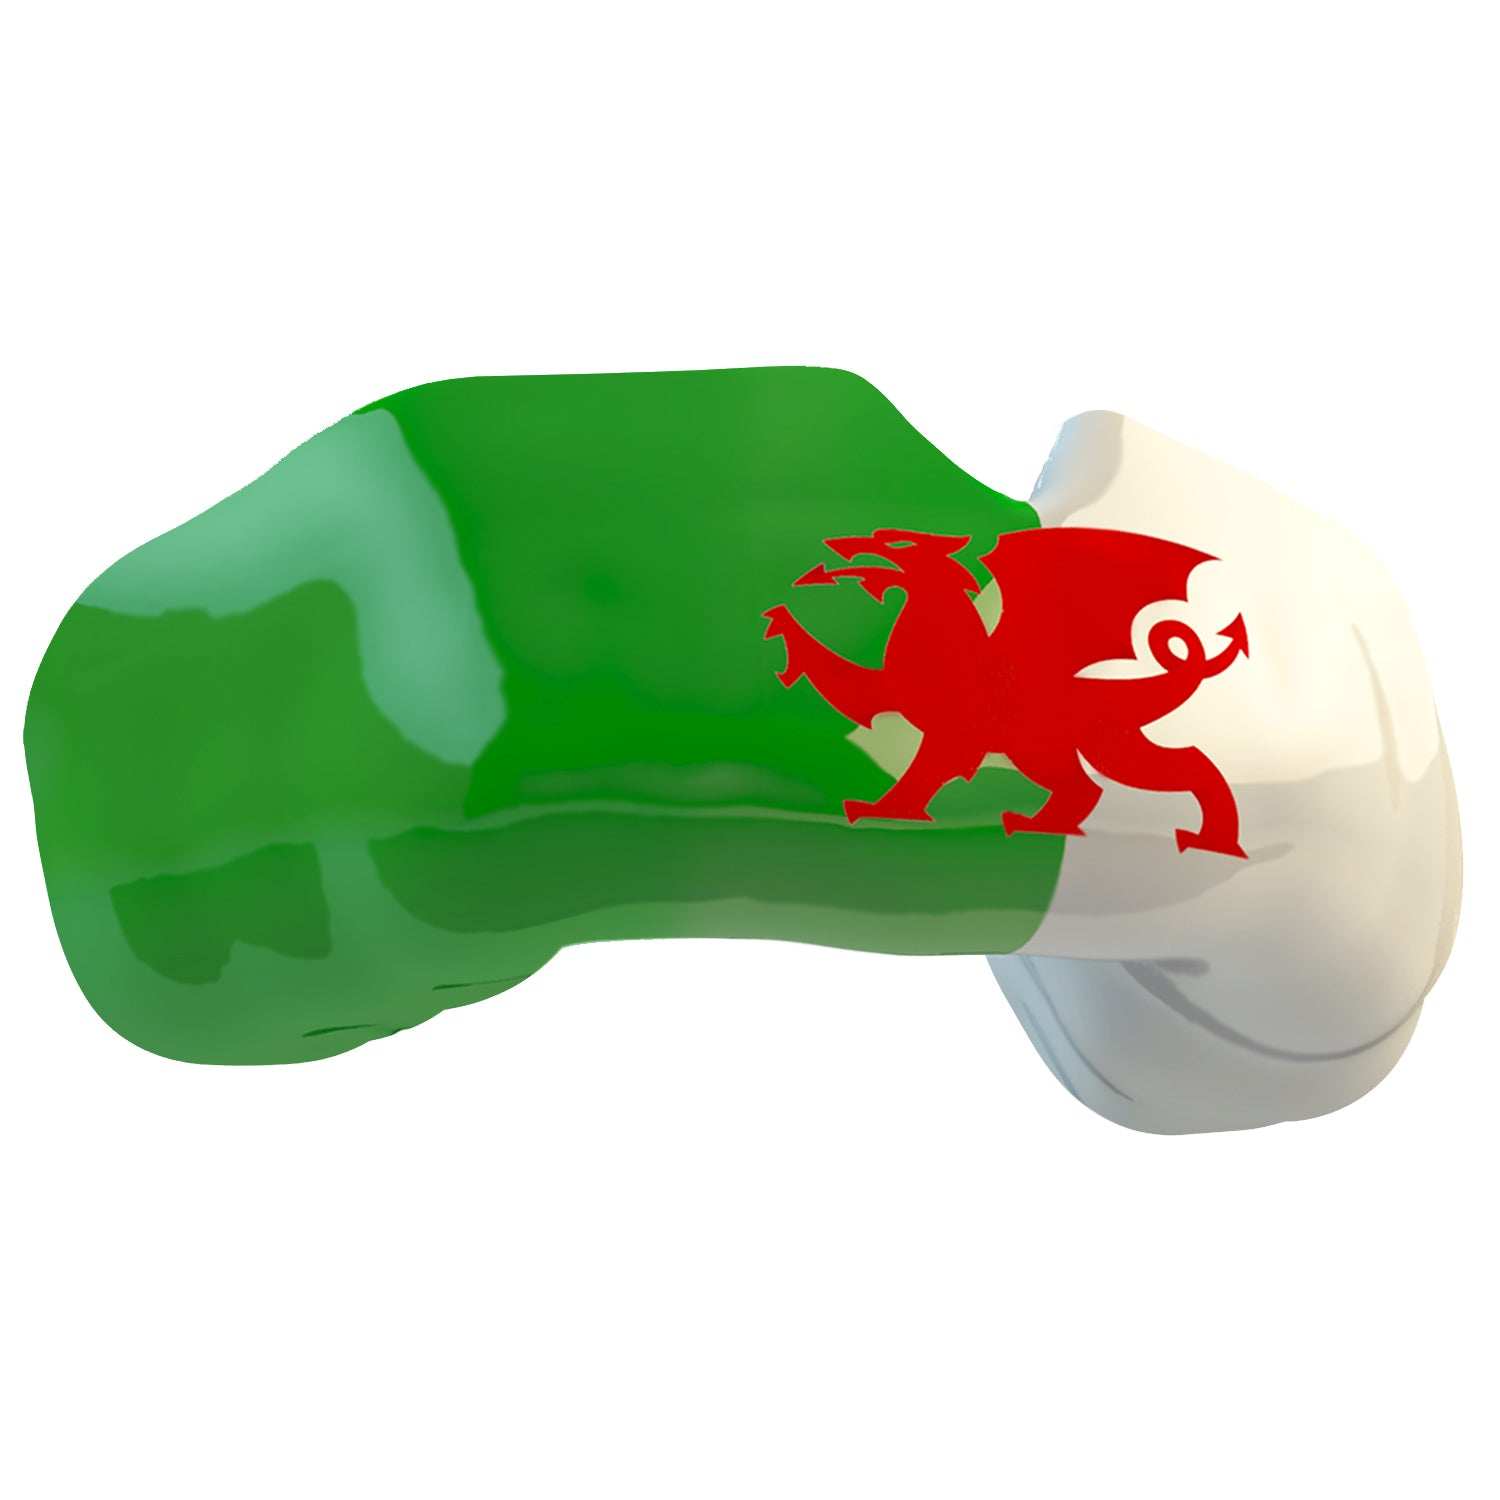 SAFEJAWZ® Popular Design Custom-fit Mouthguard - The David. Wales Flag Gum Shield.